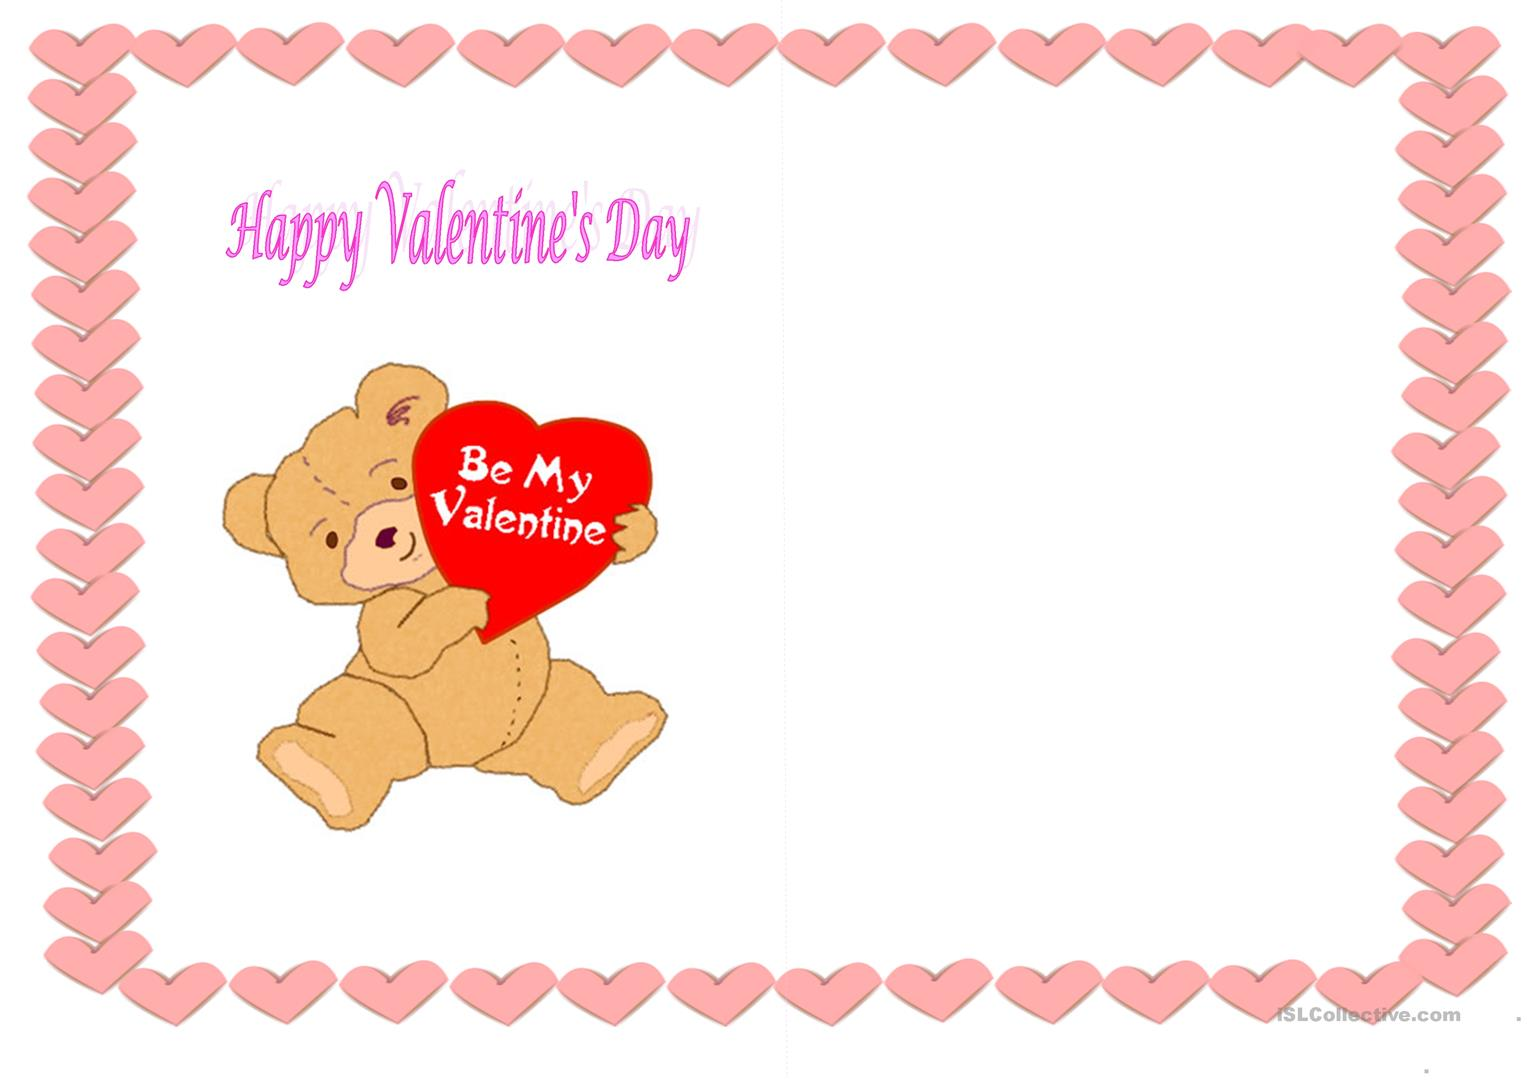 Cards For St Valentine S Day